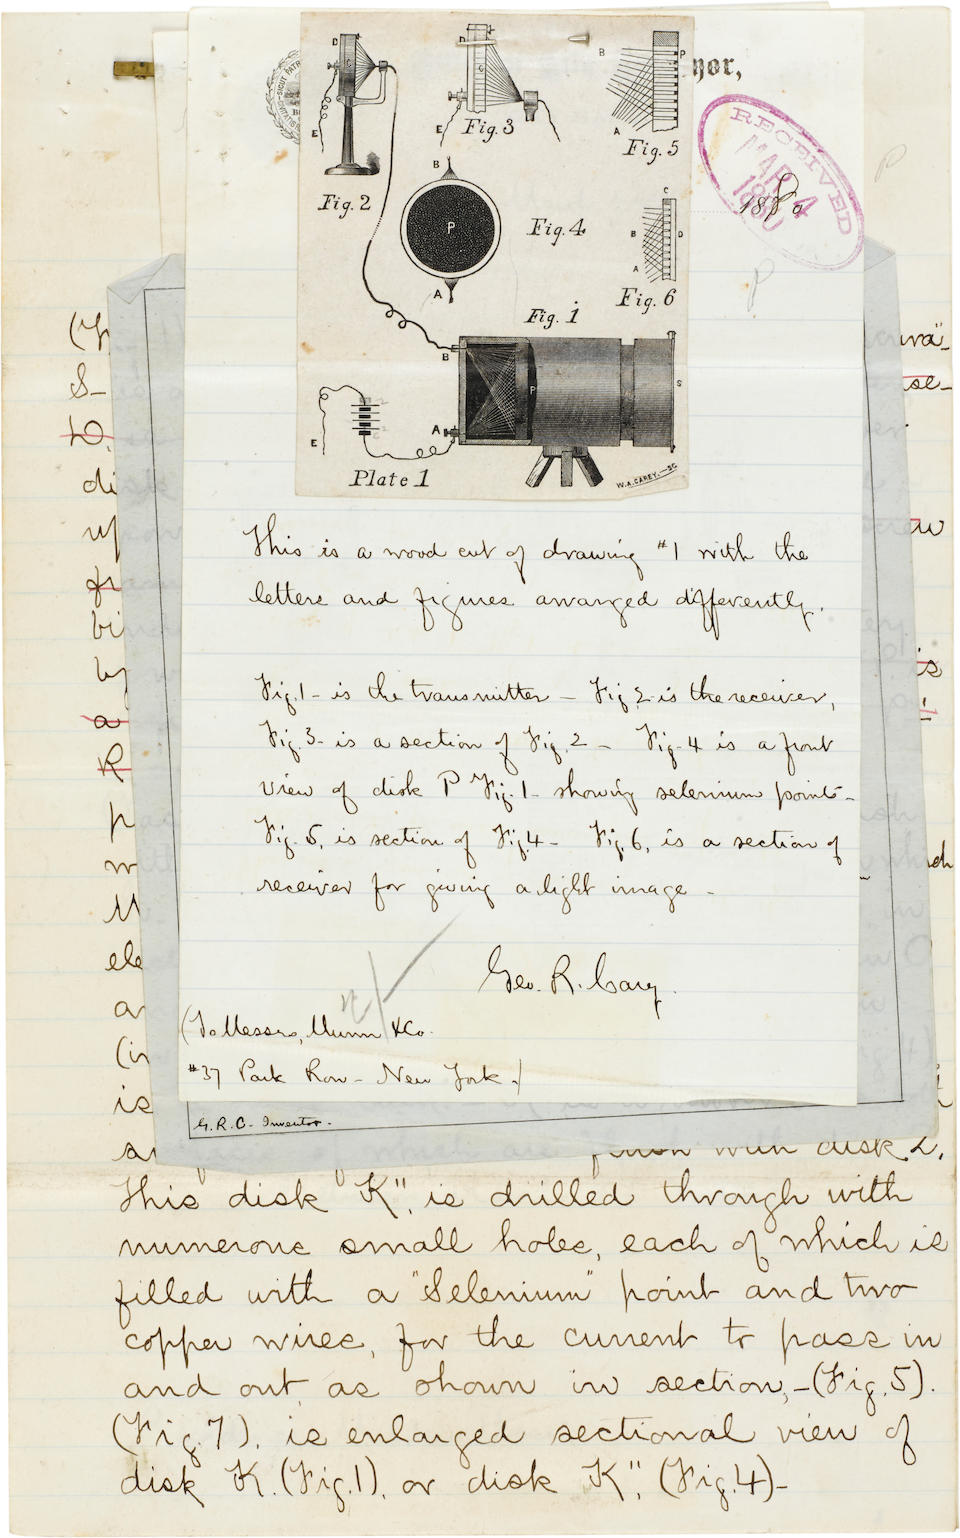 TELEVISION—CAREY ARCHIVE ON THE SELENIUM CAMERA. CAREY, GEORGE R. b.1851. Extensive archive from the files of George R. Carey containing both working diagrams and calculations and fair copies made for the patent purposes and publication, 1878-1903, comprising: